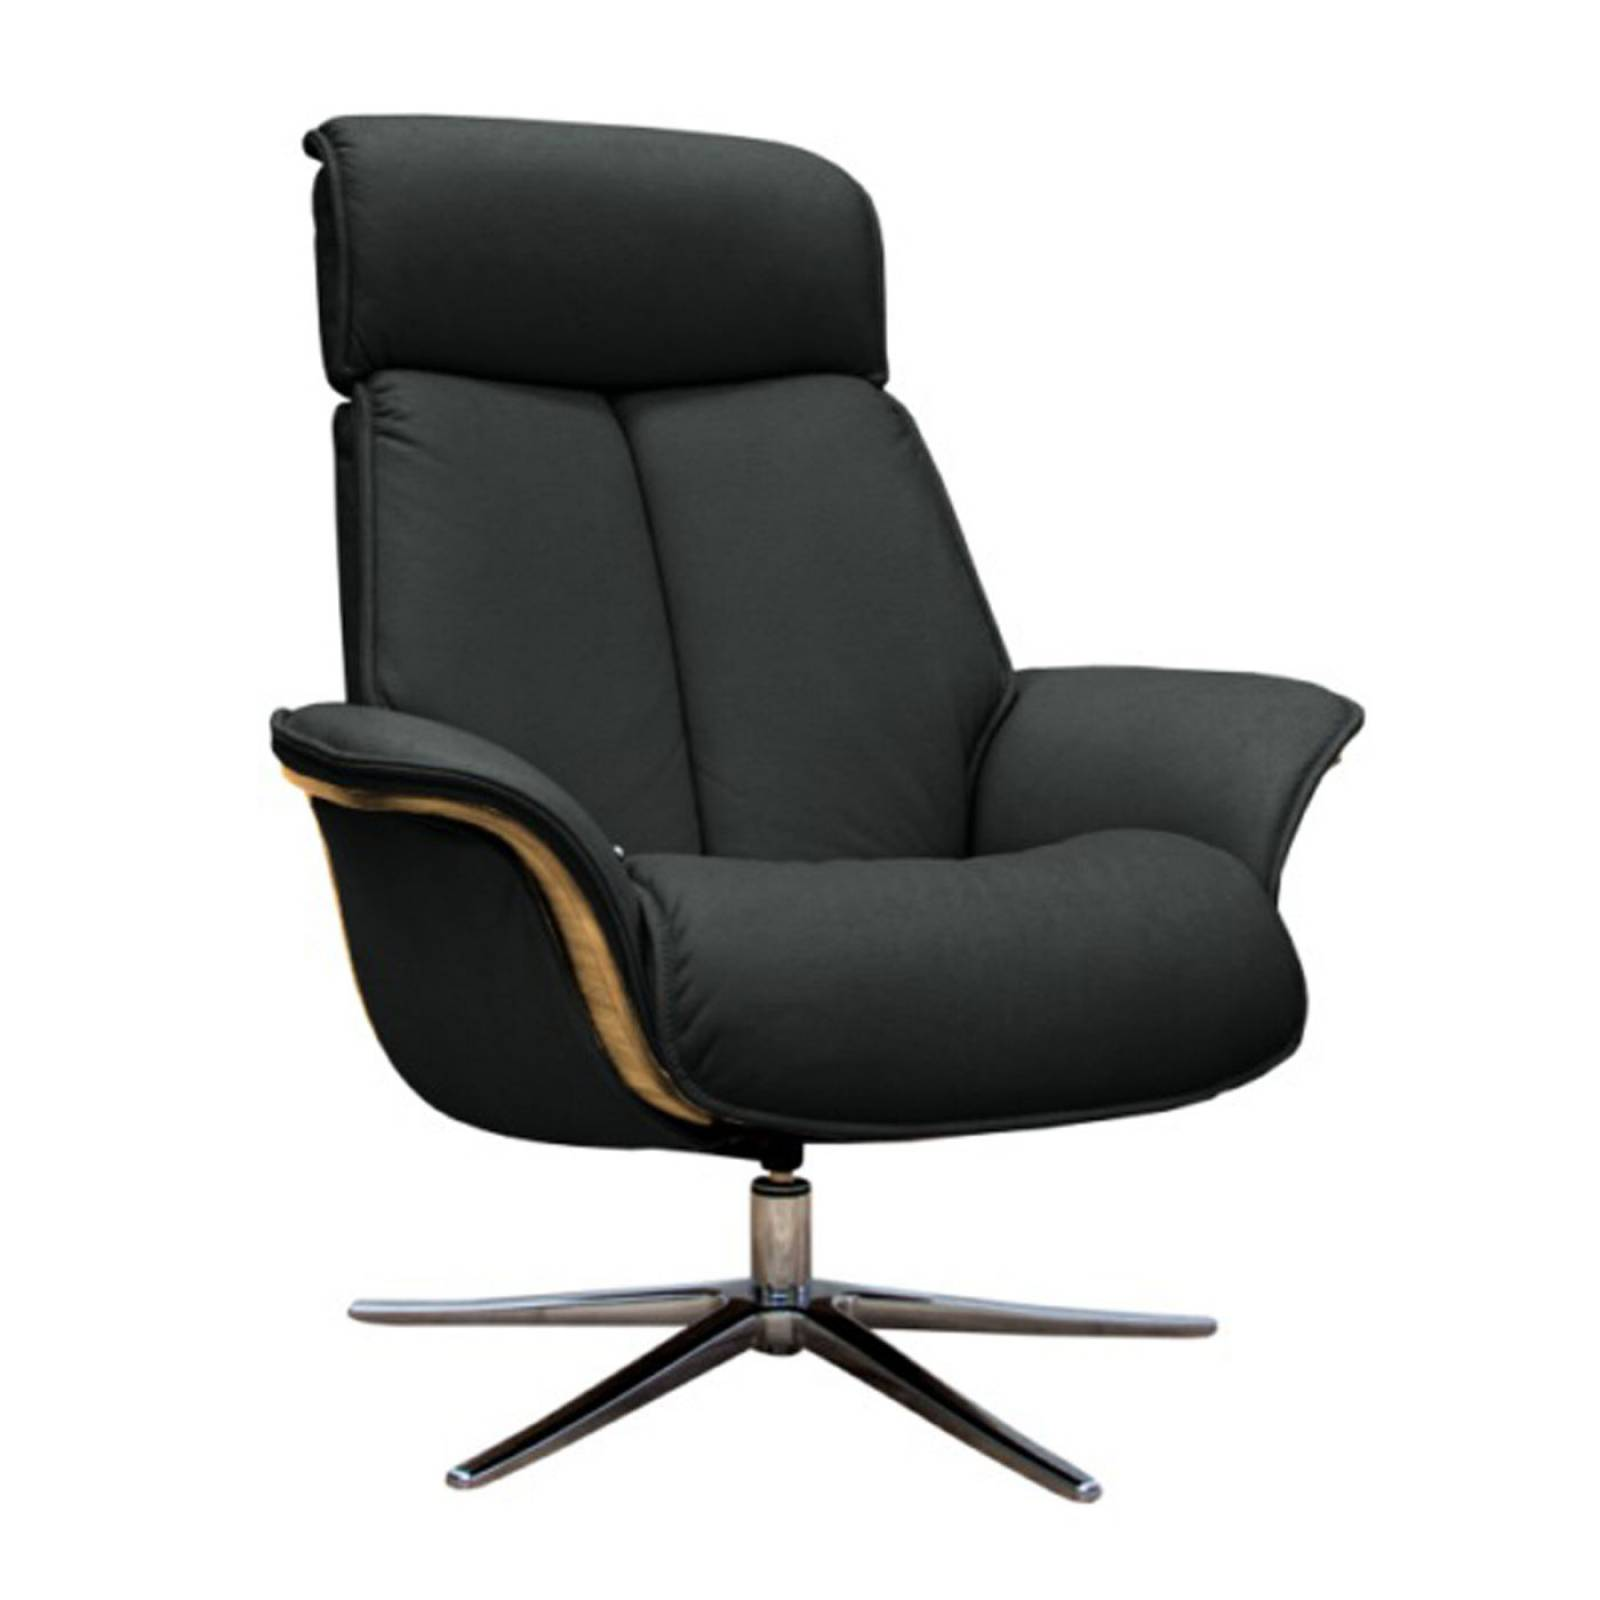 G Plan - The Lund - Recliner Armchair & Footstool - Leather Side